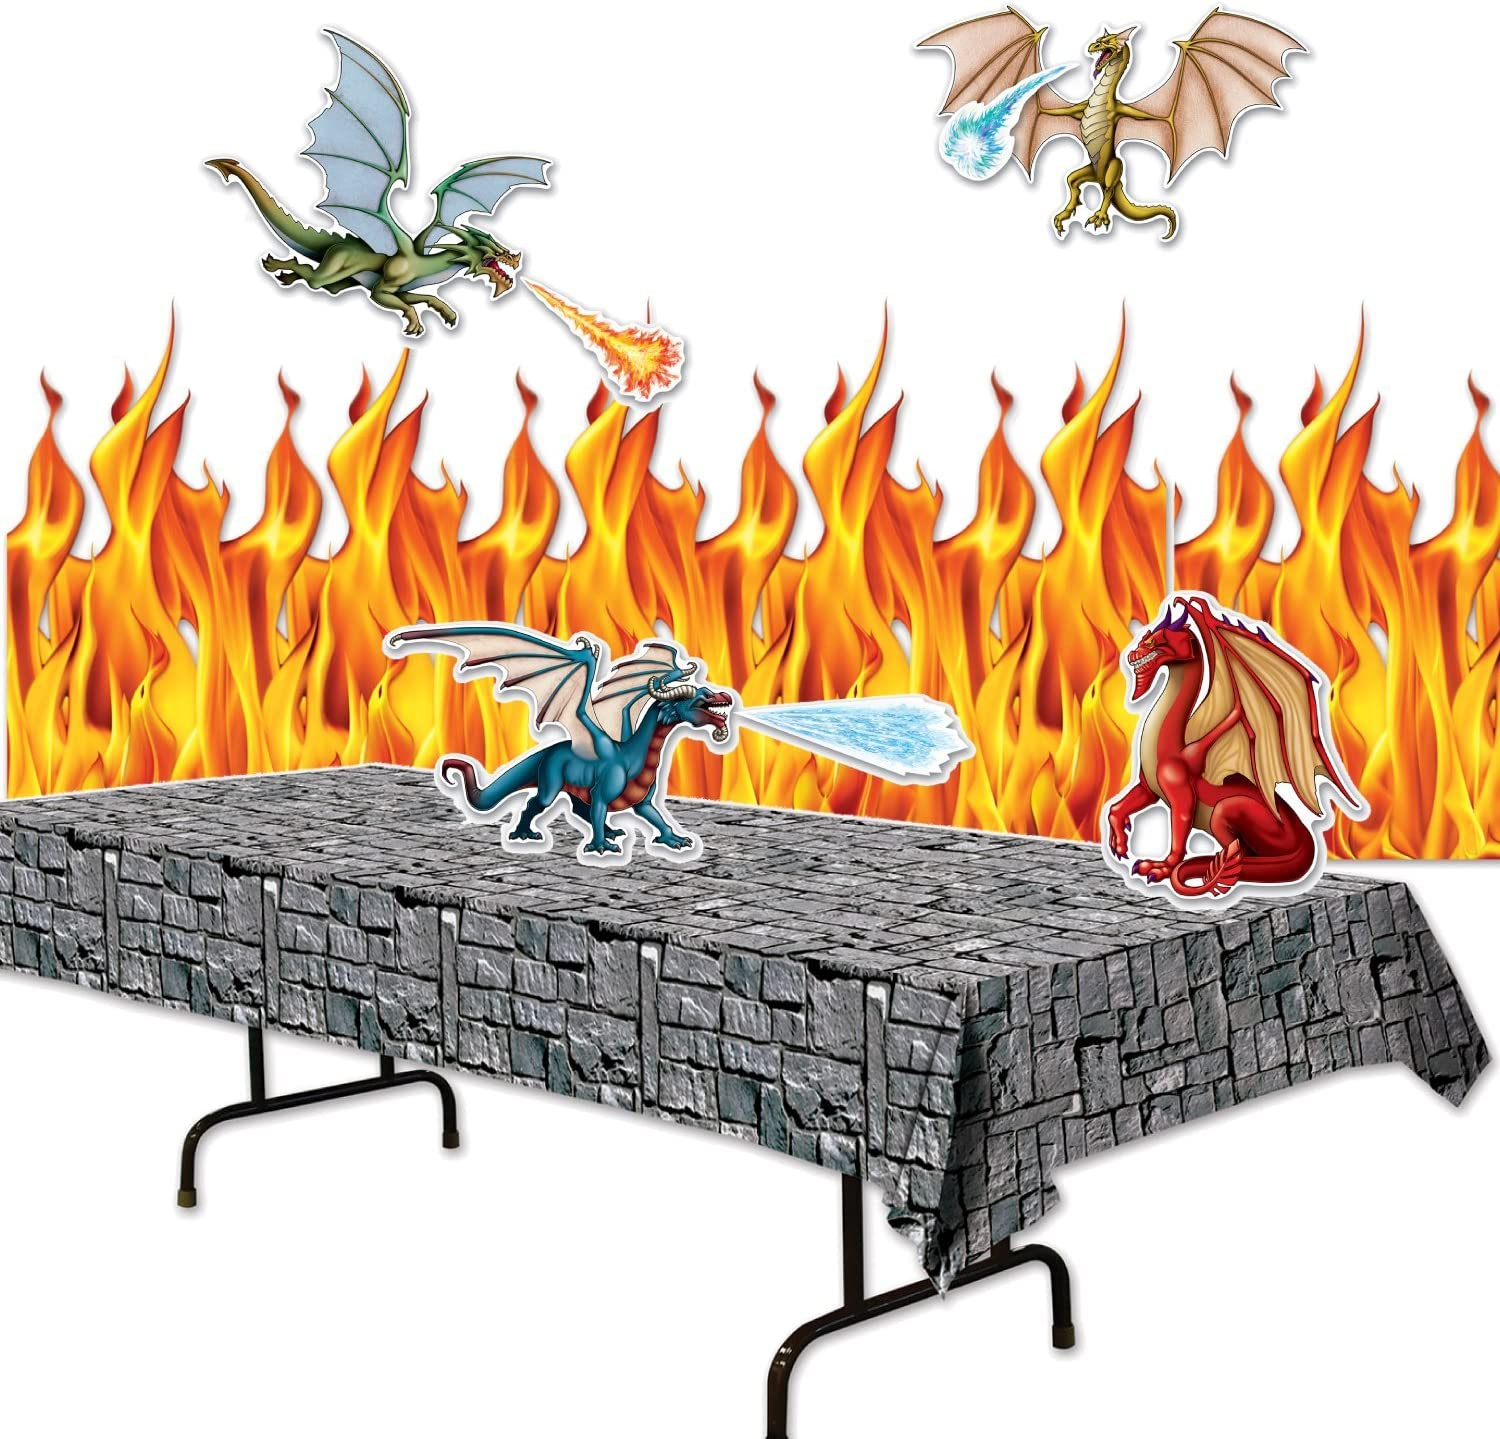 FAKKOS Design Dragon Party Supplies Decor Set - Flame Backdrop, Stone Table Cover, Dragon Cutouts